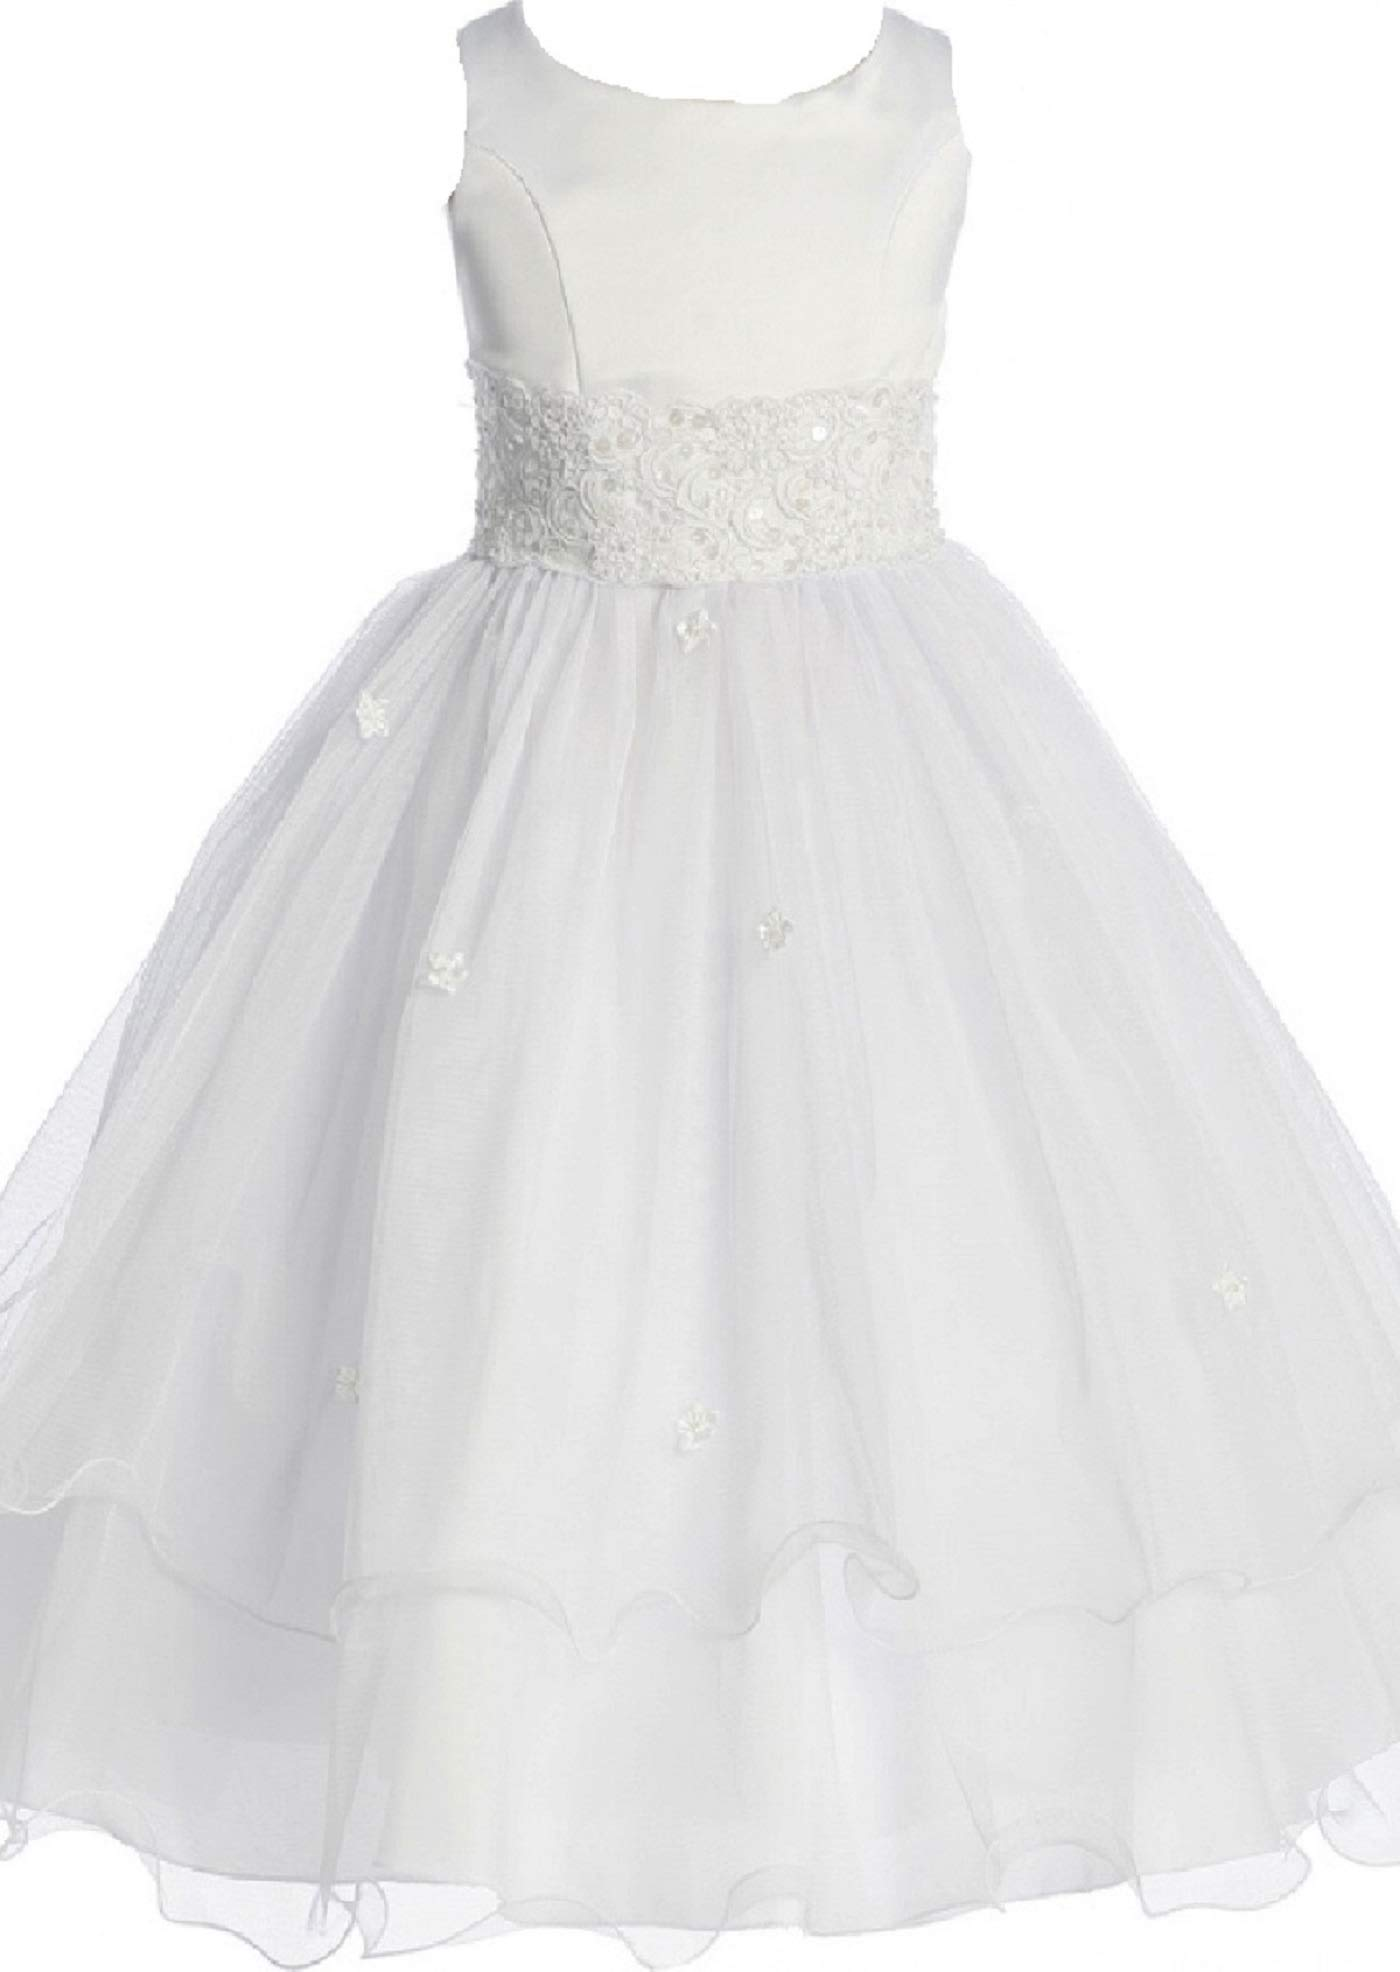 Flower Girl Dress First Communion Sleeveless Embroidery Tulle Dress Big Girl White 8 KD.198